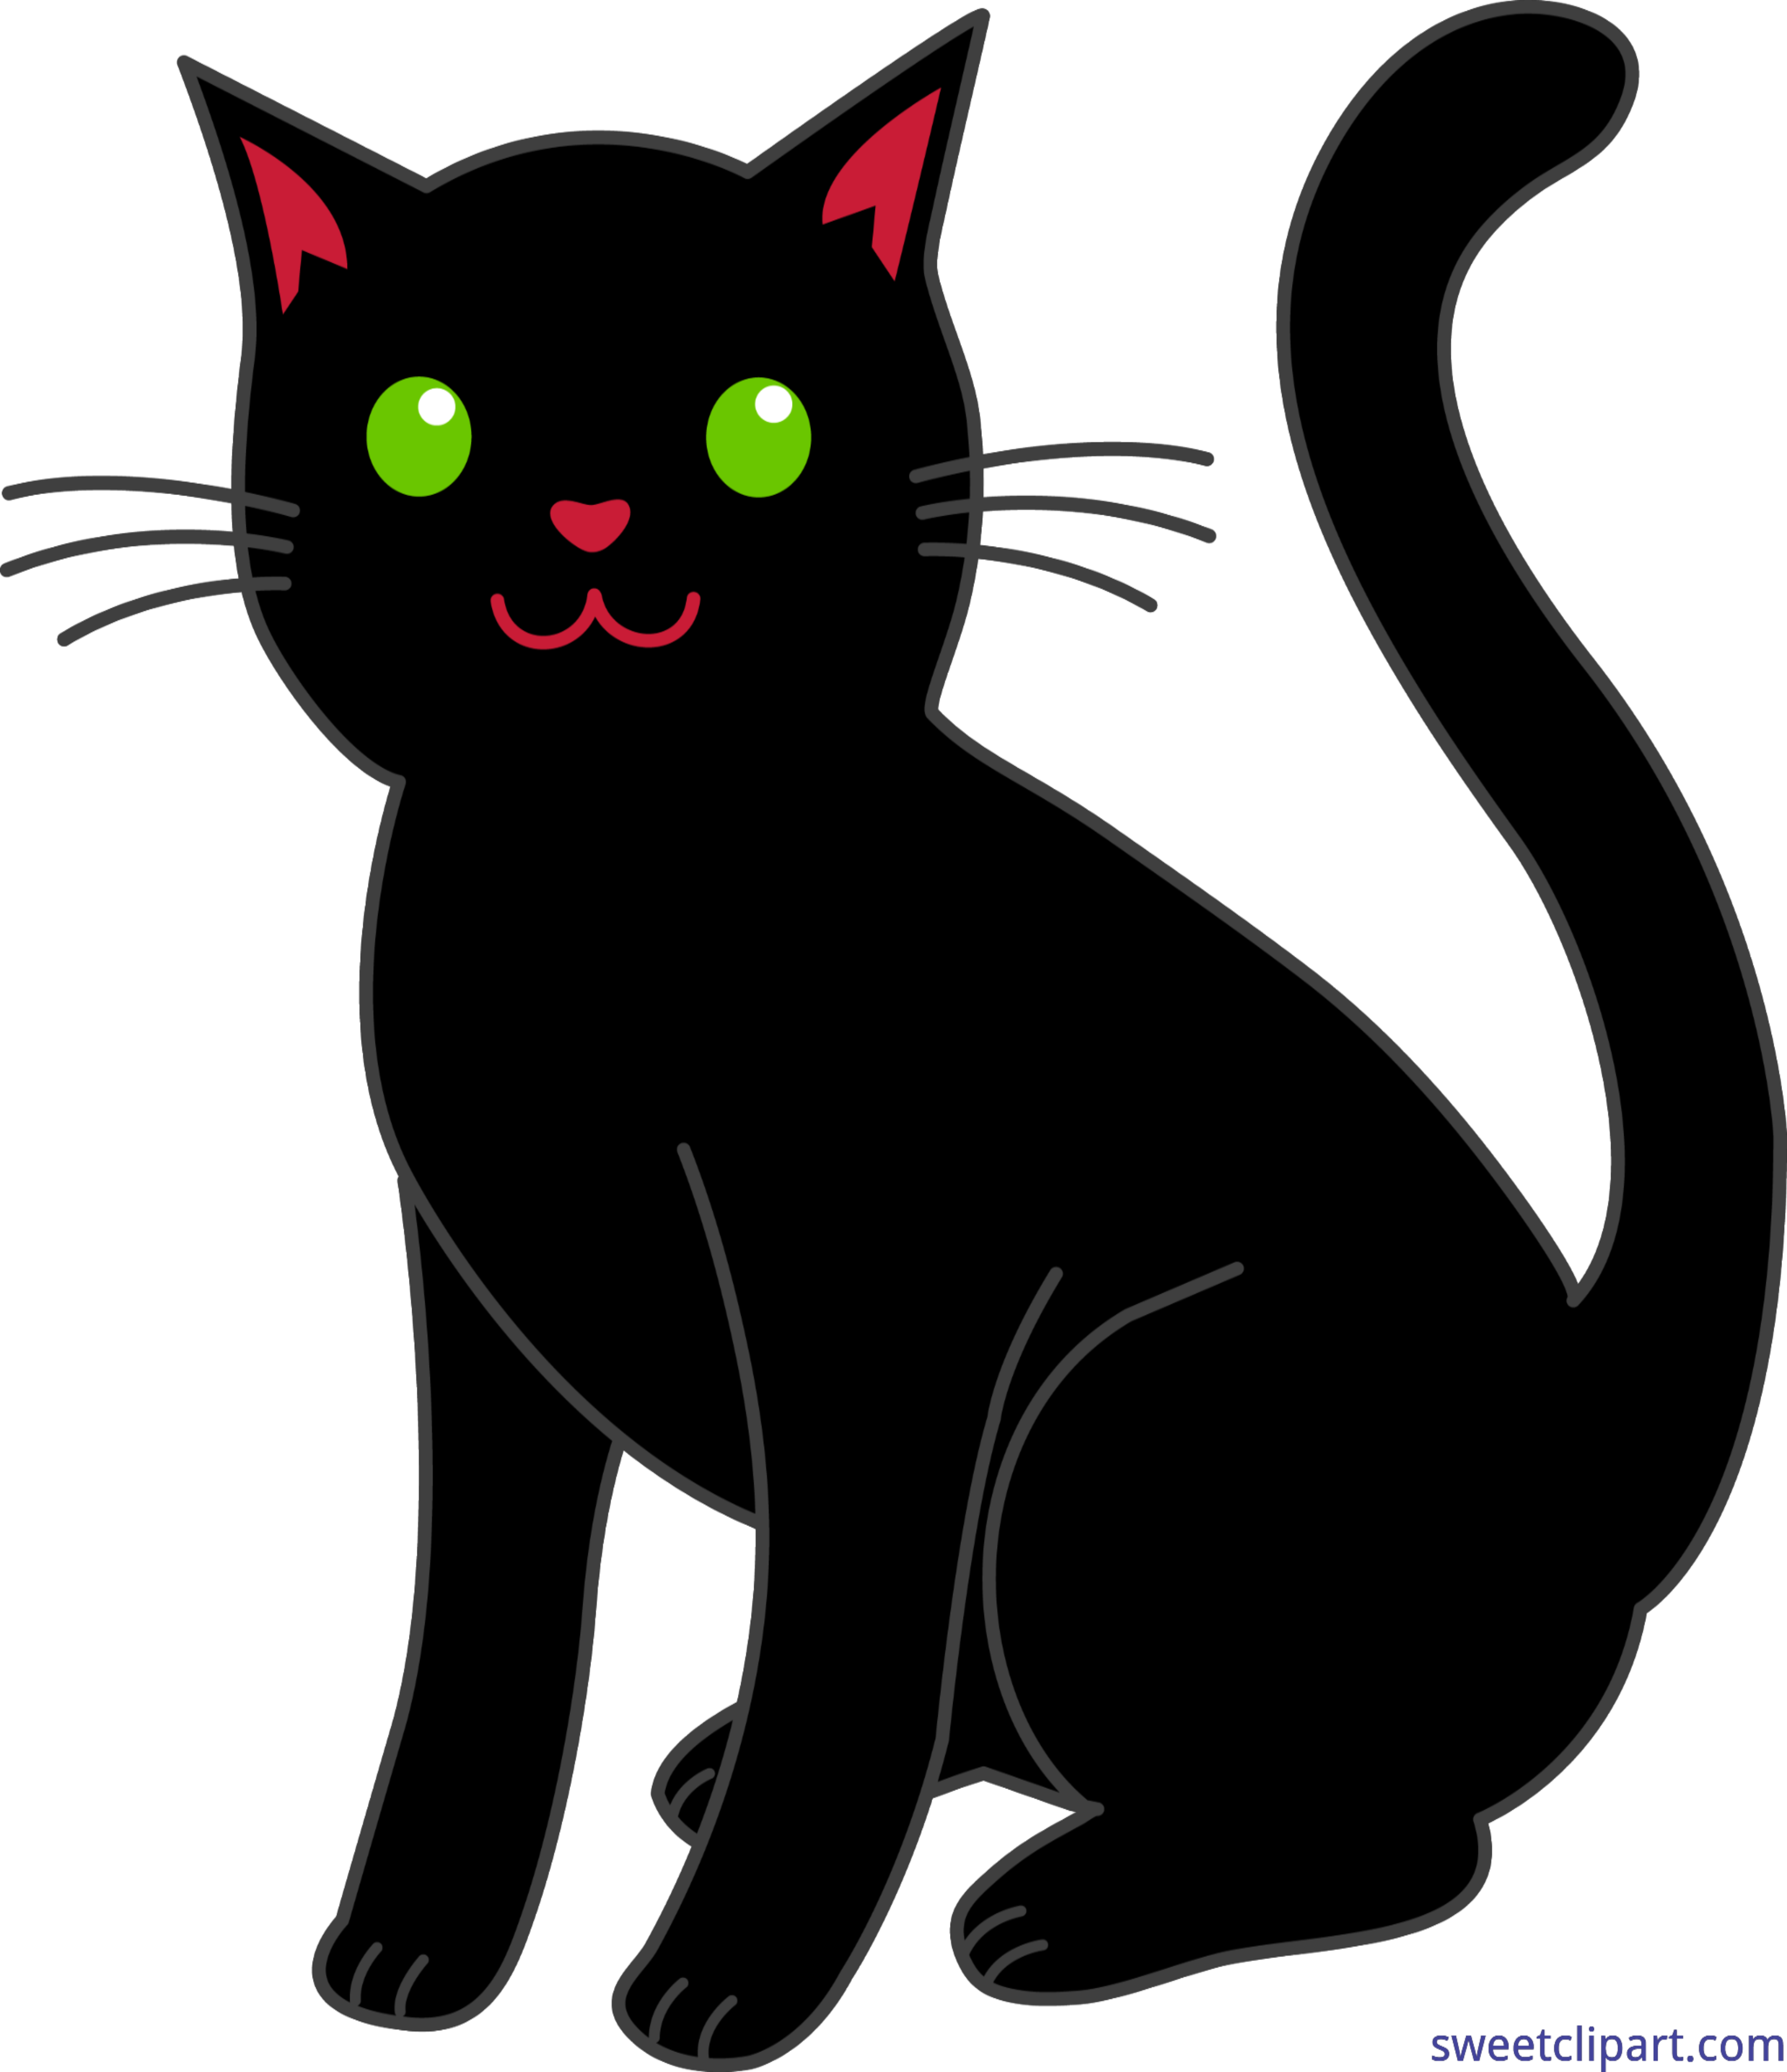 Black cat whiskers clipart graphic Halloween Black Cat Clip Art - Sweet Clip Art graphic